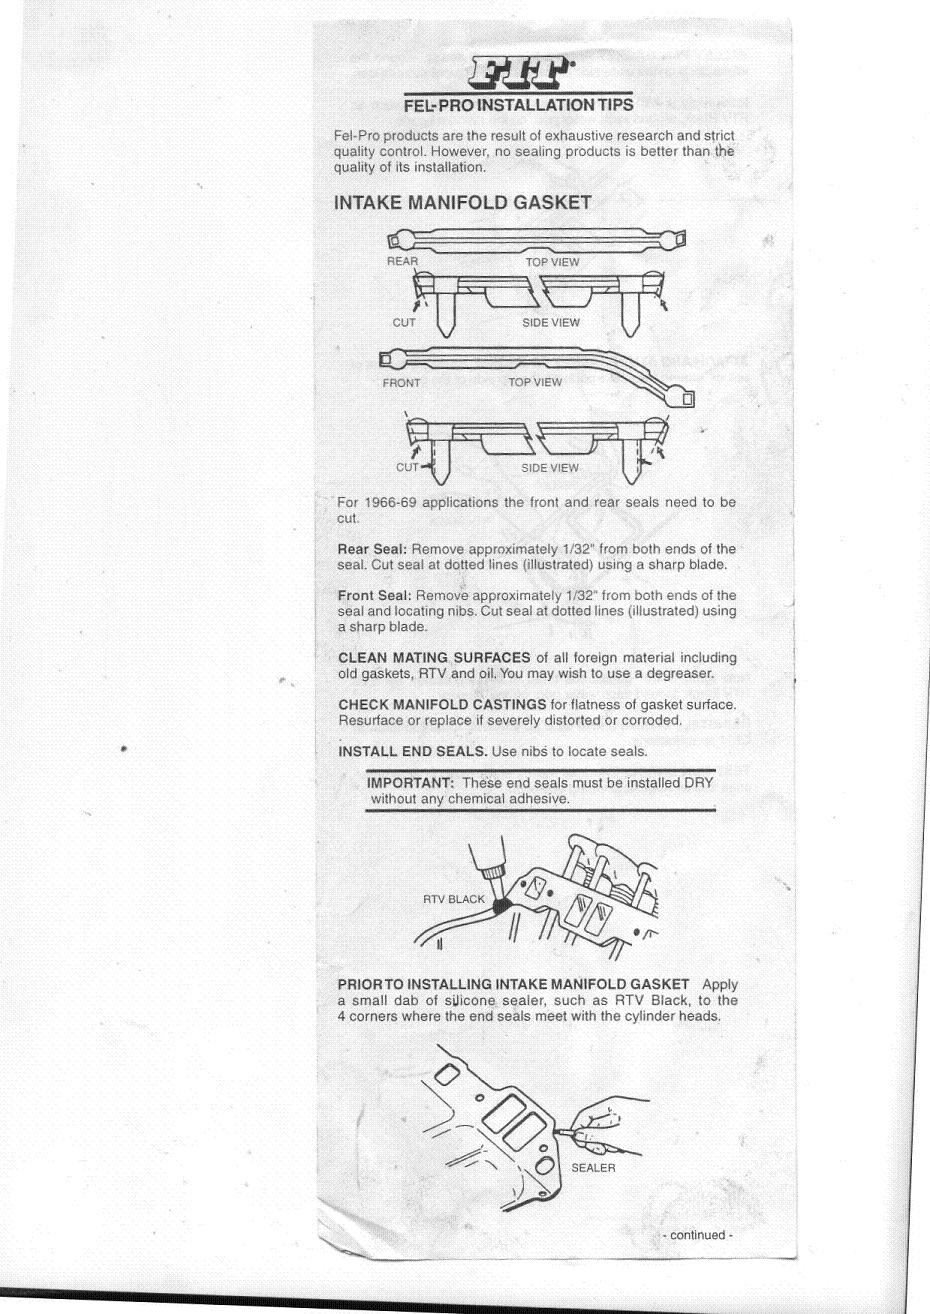 changement arbre à came+chaine distrib etc-Besoin d'avis - Page 4 Valley0001red